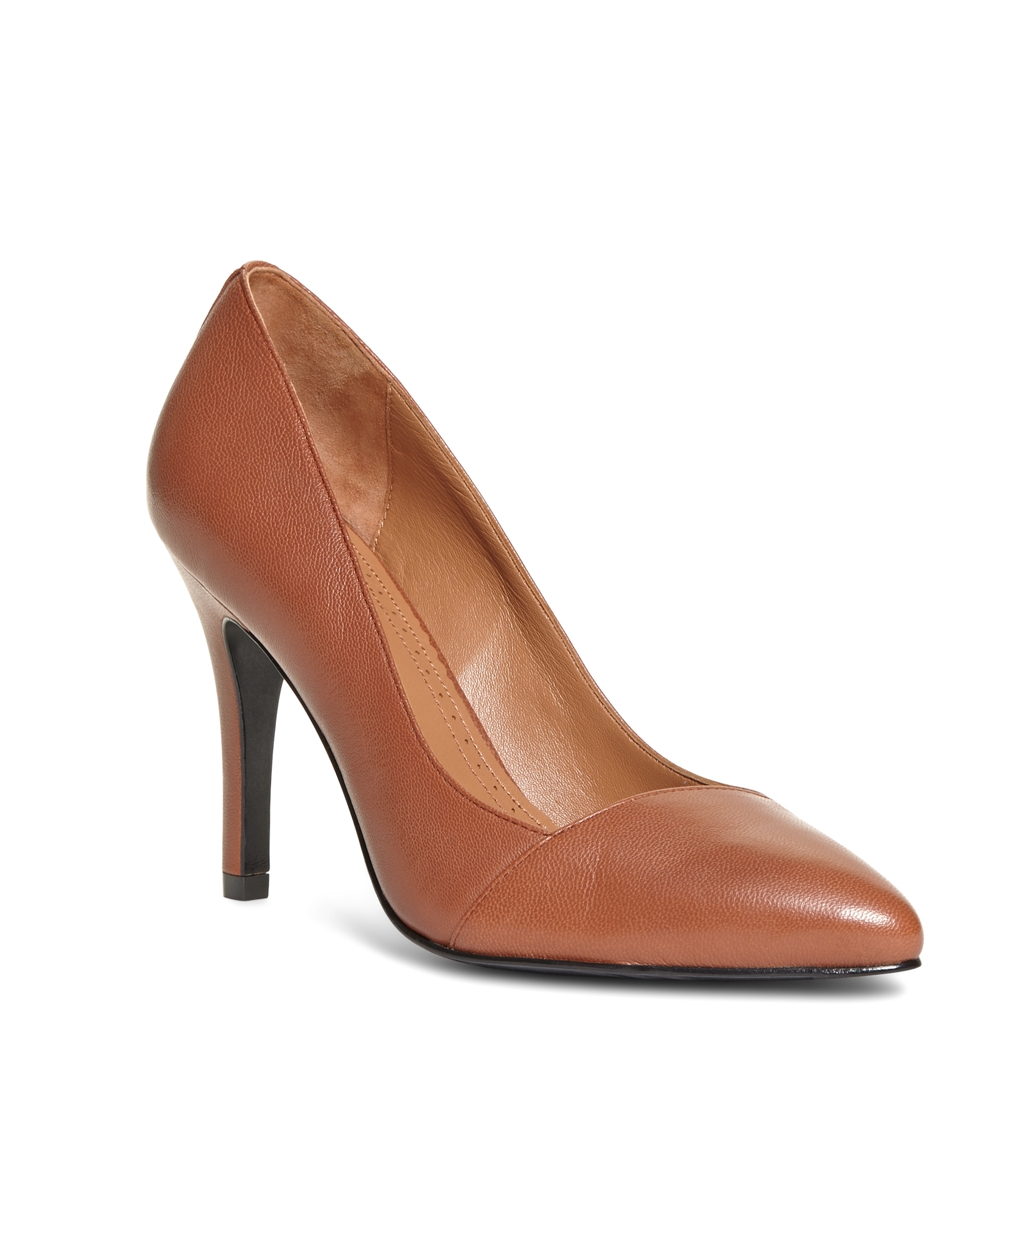 Brooks brothers Leather Pumps in Brown